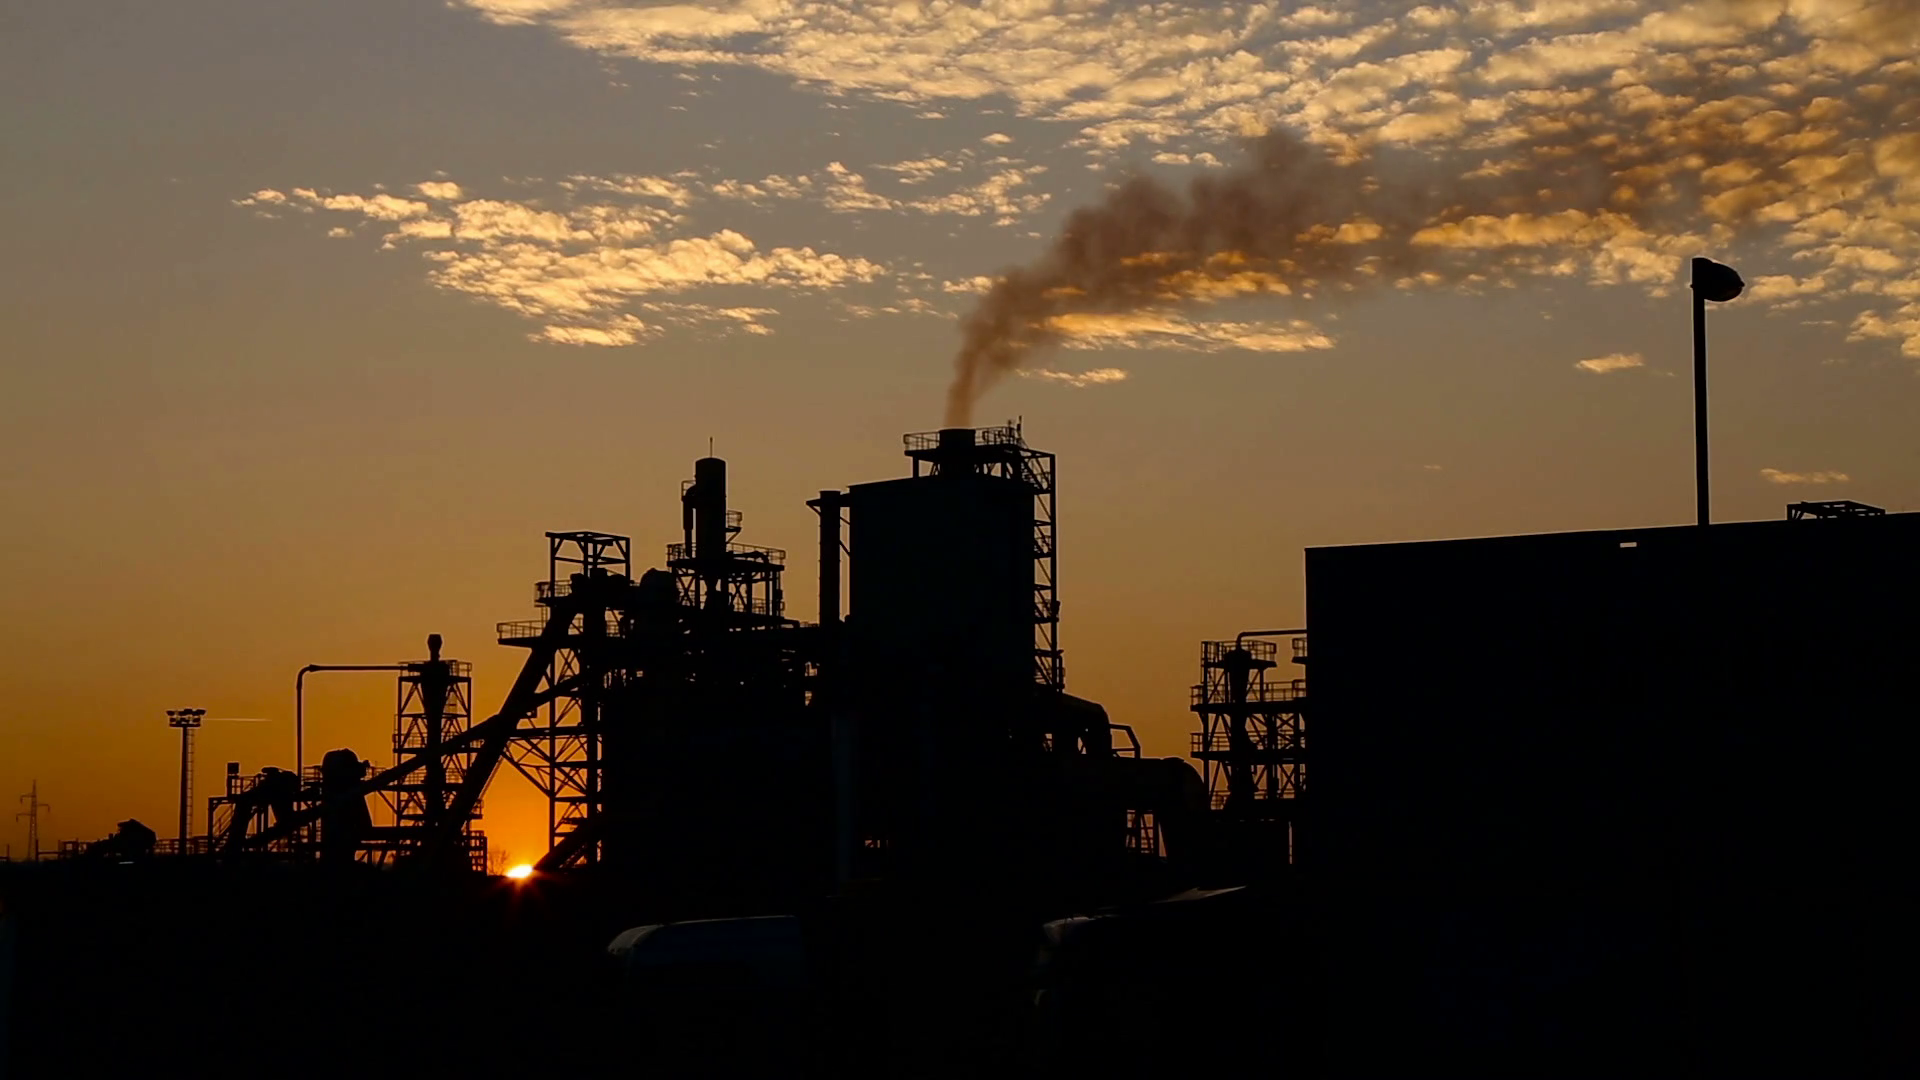 Factories at sunset photo